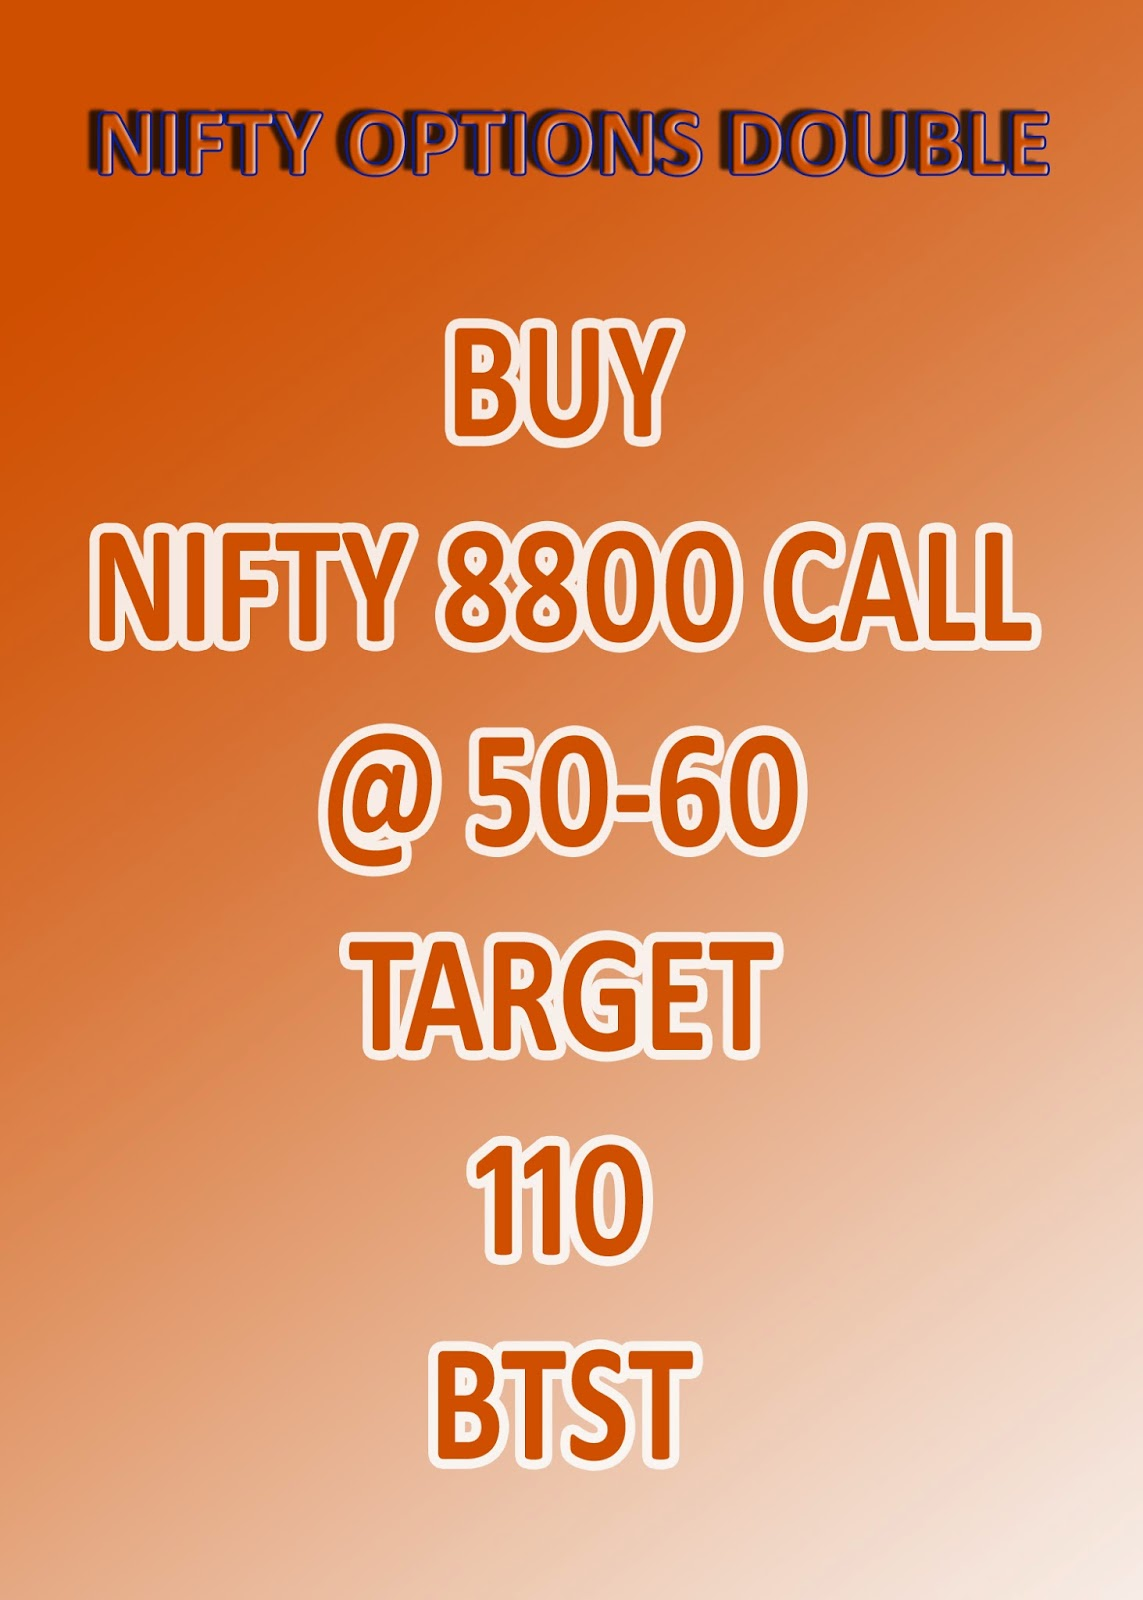 Nse stock options tips